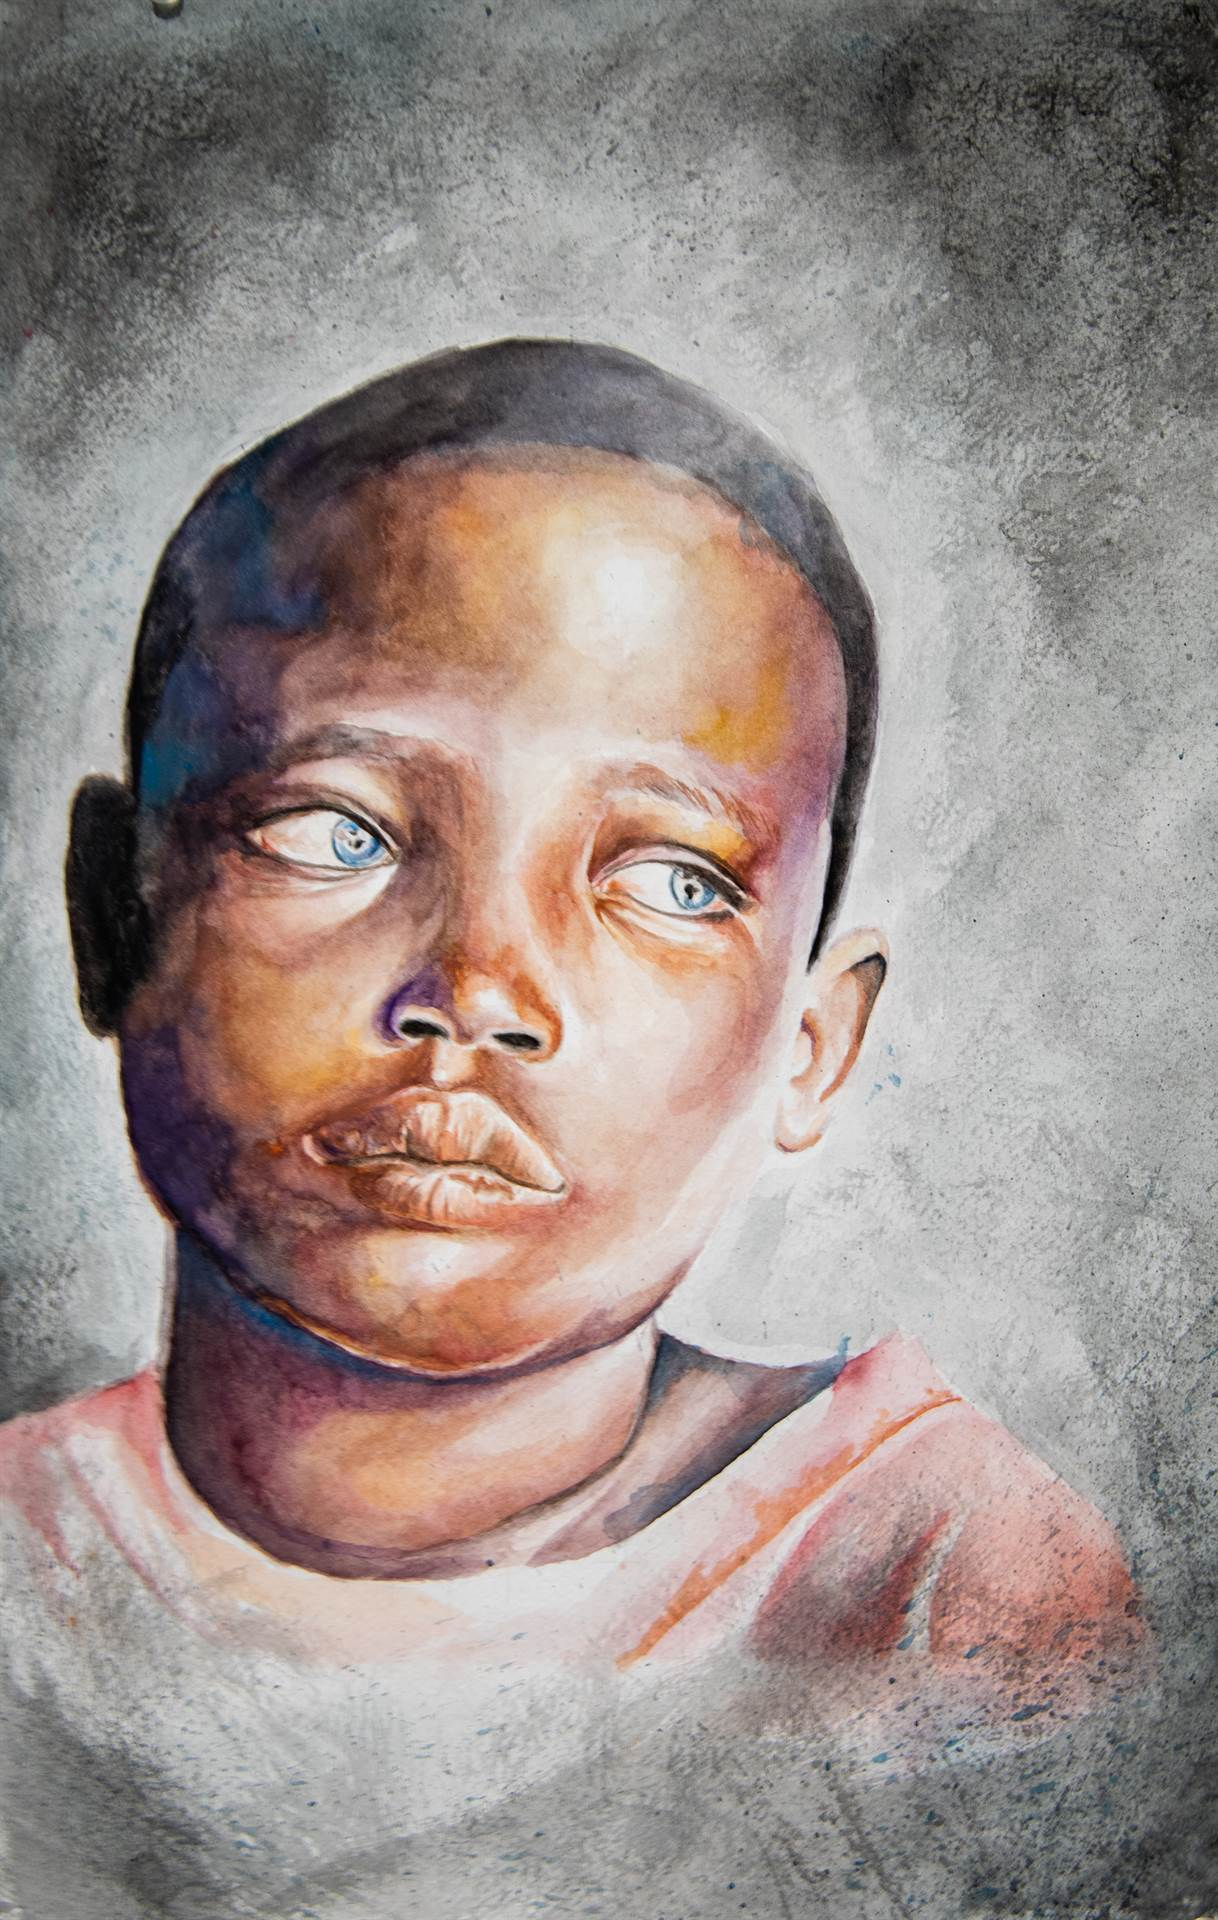 Paiting of Child looking off canvas